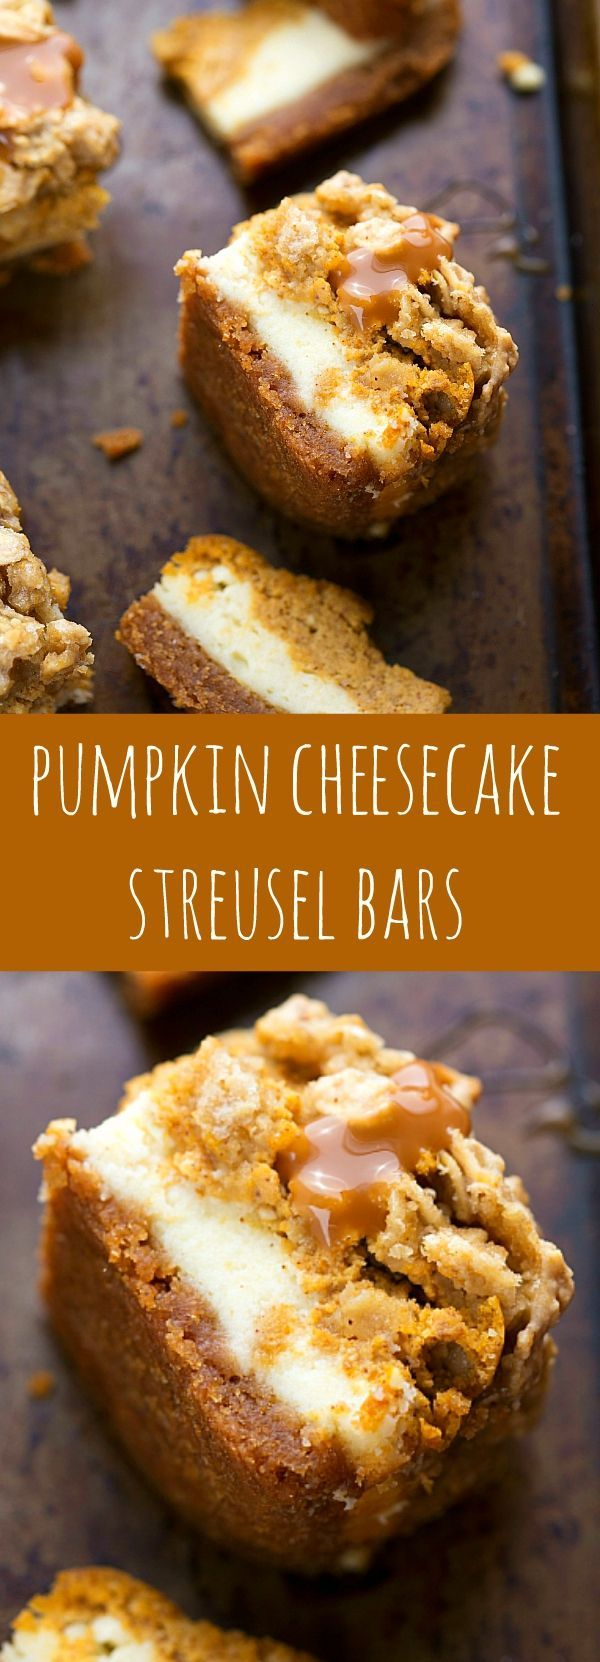 With two layers of cheesecake on a delicious cinnamon graham cracker crust topped with an easy streusel....you'll want to keep this recipe handy! Pumpkin Caramel Cheesecake Bars with Streusel Topping - Fall and Winter Dessert Recipe | Chelsea's Messy Apron